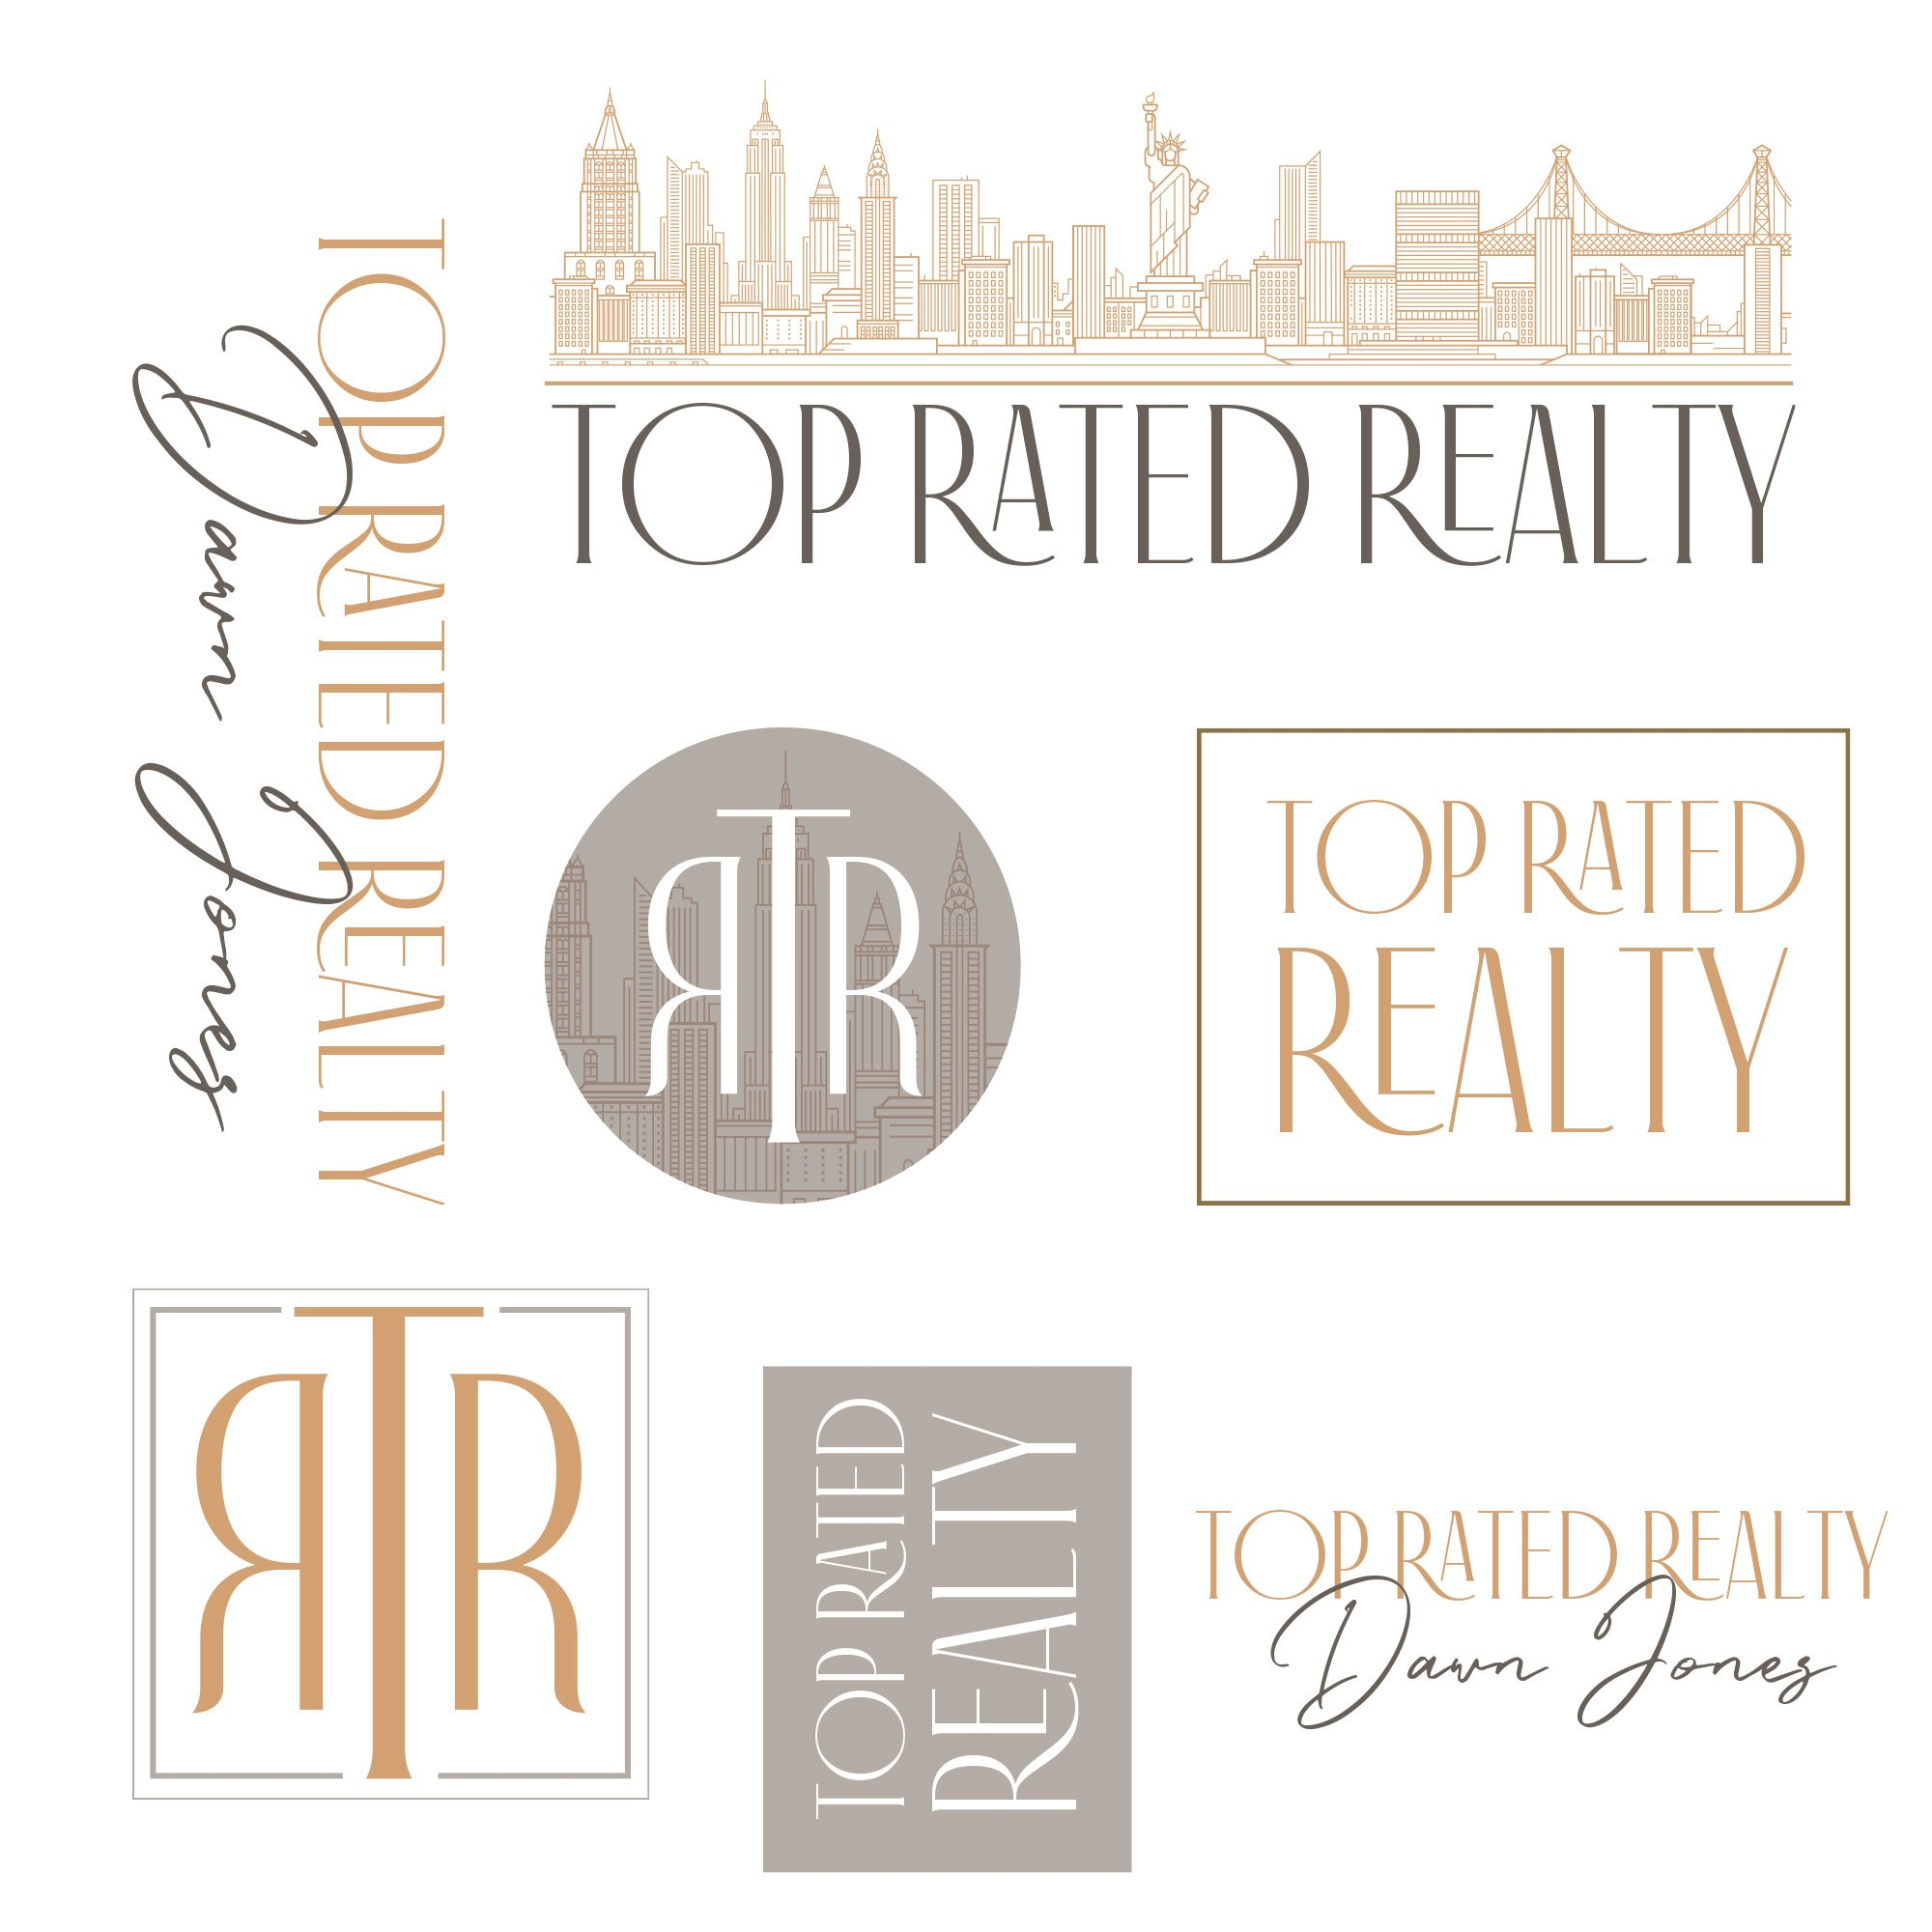 Top Rated Realty complete logo set with variations, designed by Fancy Girl Design Studio